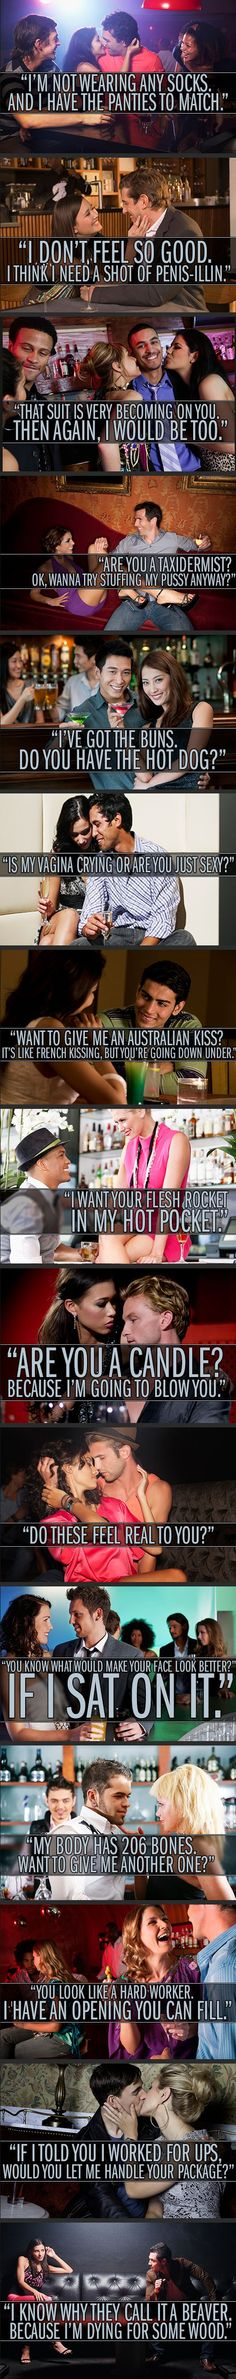 If women used raunchy pickup lines